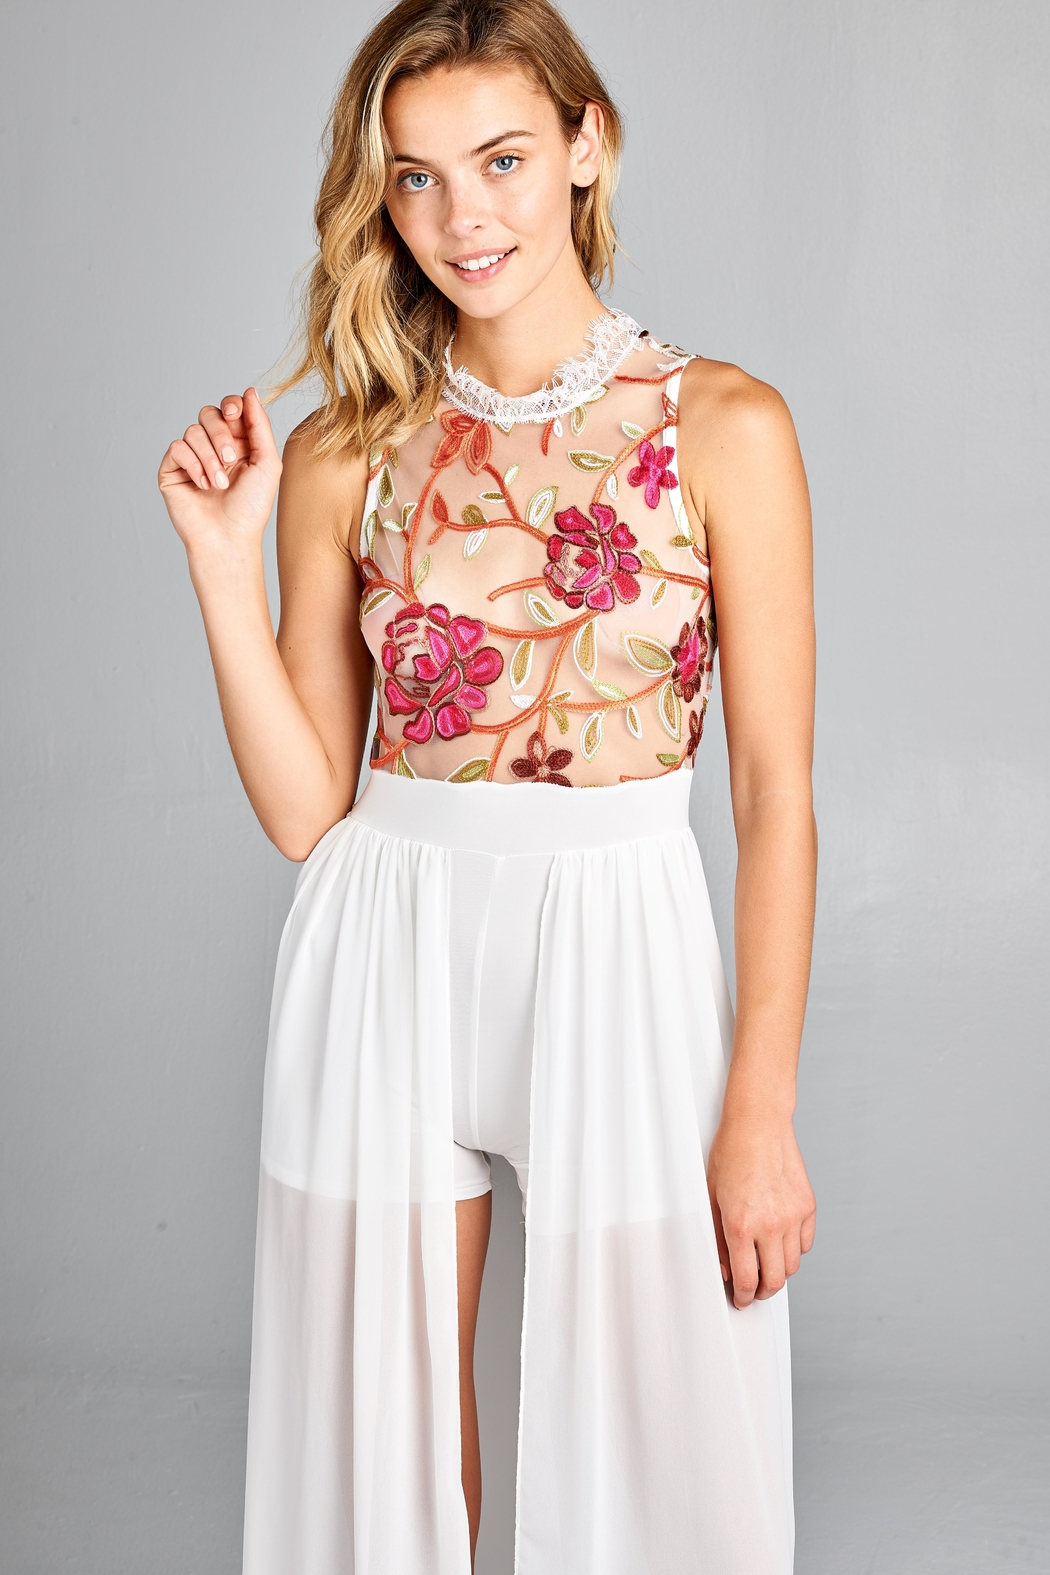 Racine Floral Lace Romper-Maxi - Front Full Image